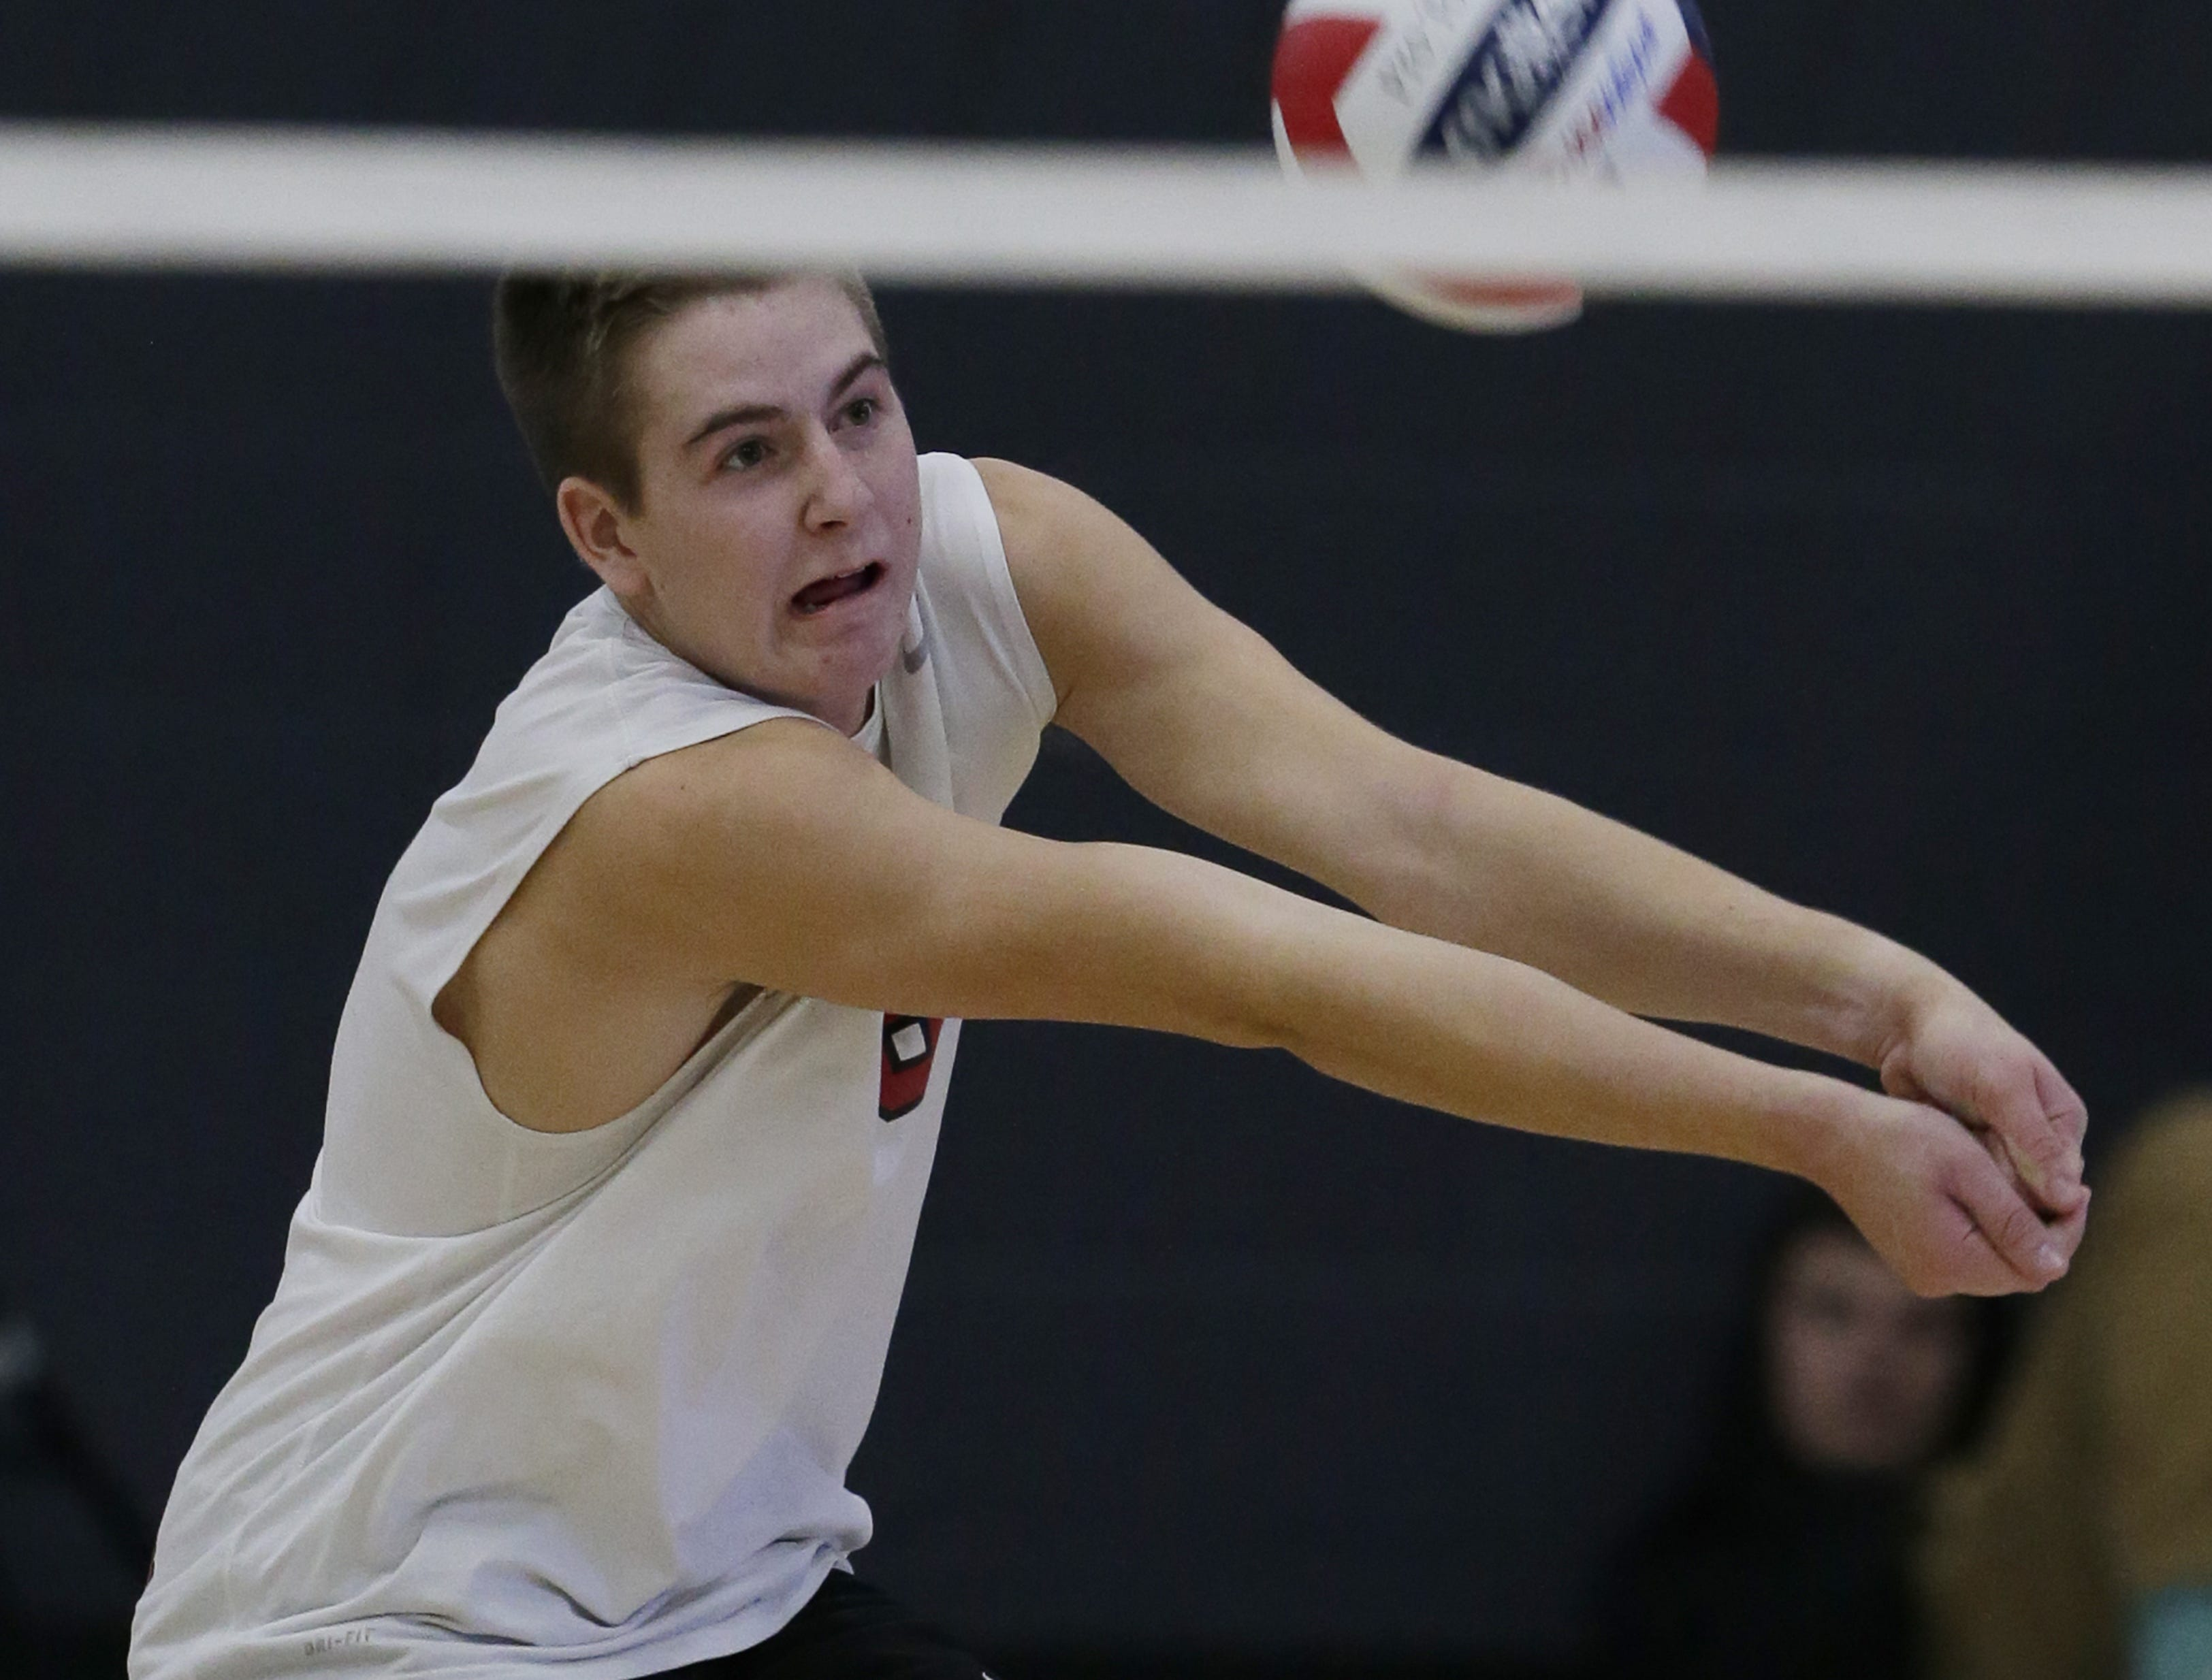 Kimberly's Eli Ruplinger bumps up the ball during their game.  Kimberly Papermakers played Germantown Warhawks in Division 1 WIAA State Boys Volleyball Championship, Saturday, November 10, 2018 at Wisconsin Lutheran College in Milwaukee, Wis. Joe Sienkiewicz/USA Today NETWORK-Wisconsin